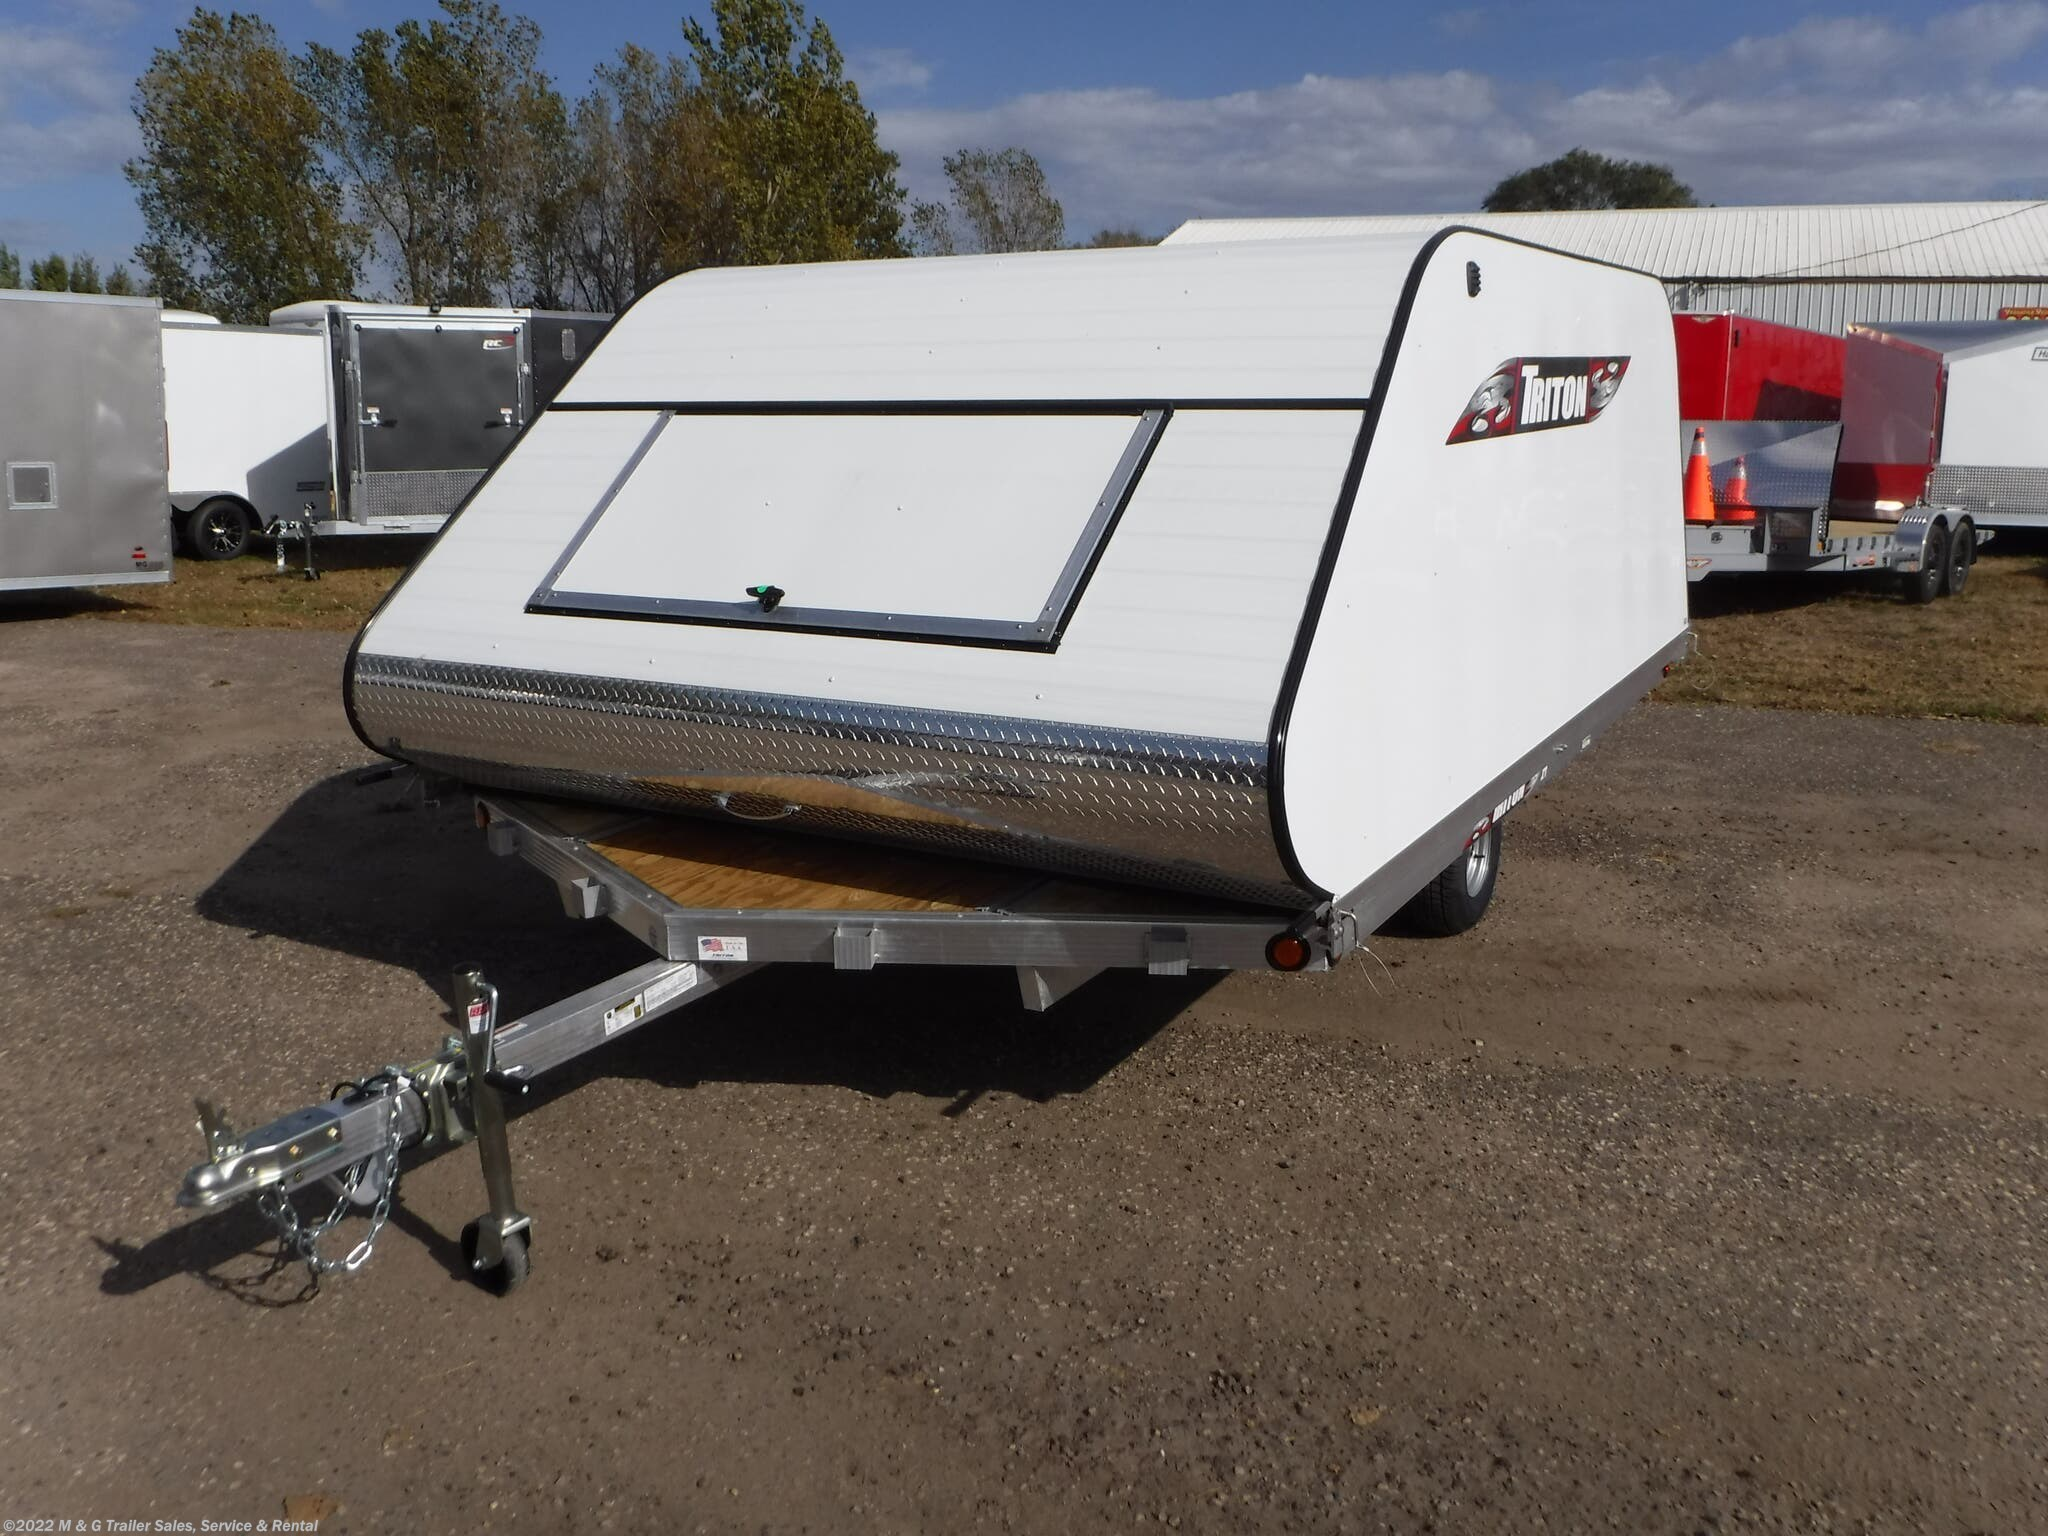 2021 Triton Trailers 12VR Coverall - White - Stock #v18339